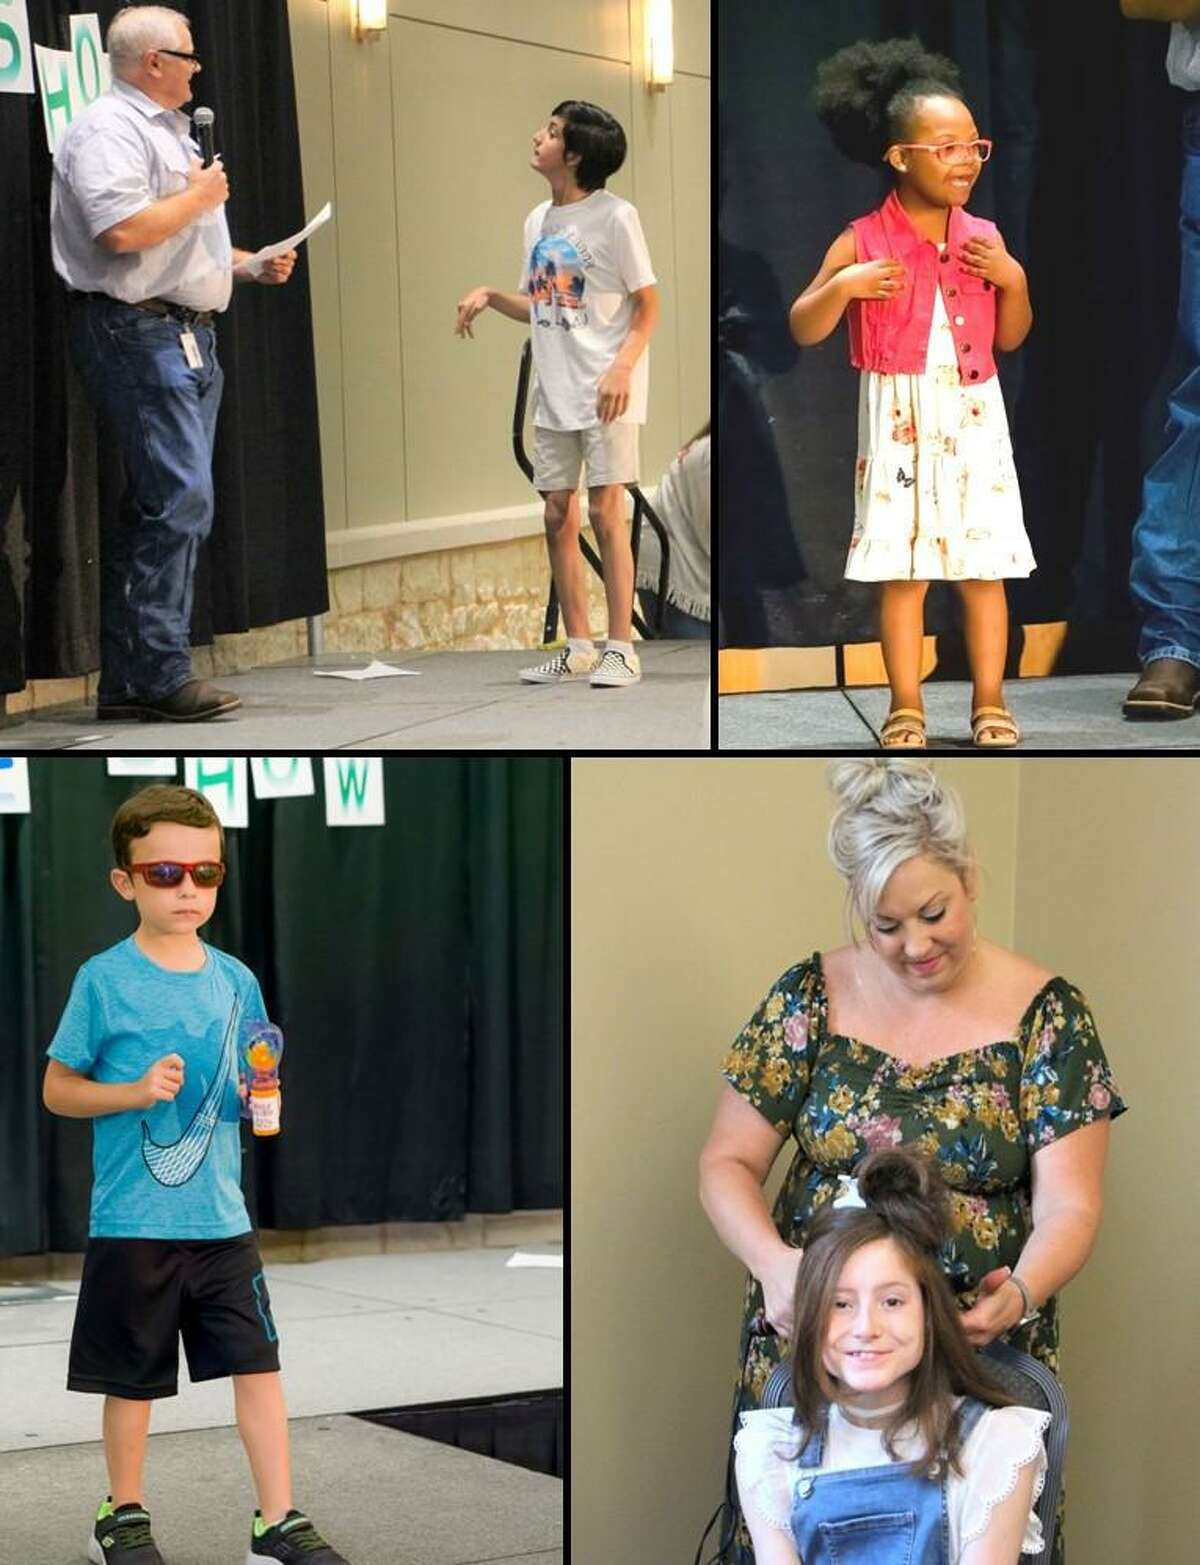 Shining Stars - Last week the Conroe Noon Lions Club hosted a Summer Style Show and treated future Texas Lions Camp - campers to a day of fashion, style and fun. Pictured: top (l-r) Emcee Lion Scott Perry jokes with Daniel on the runway, while a young Rylee shows off her new treads. Bottom (l-r) David is ready for summer in his cool new shades and Avery gets a new 'do' from Stylist Ali Krueger.